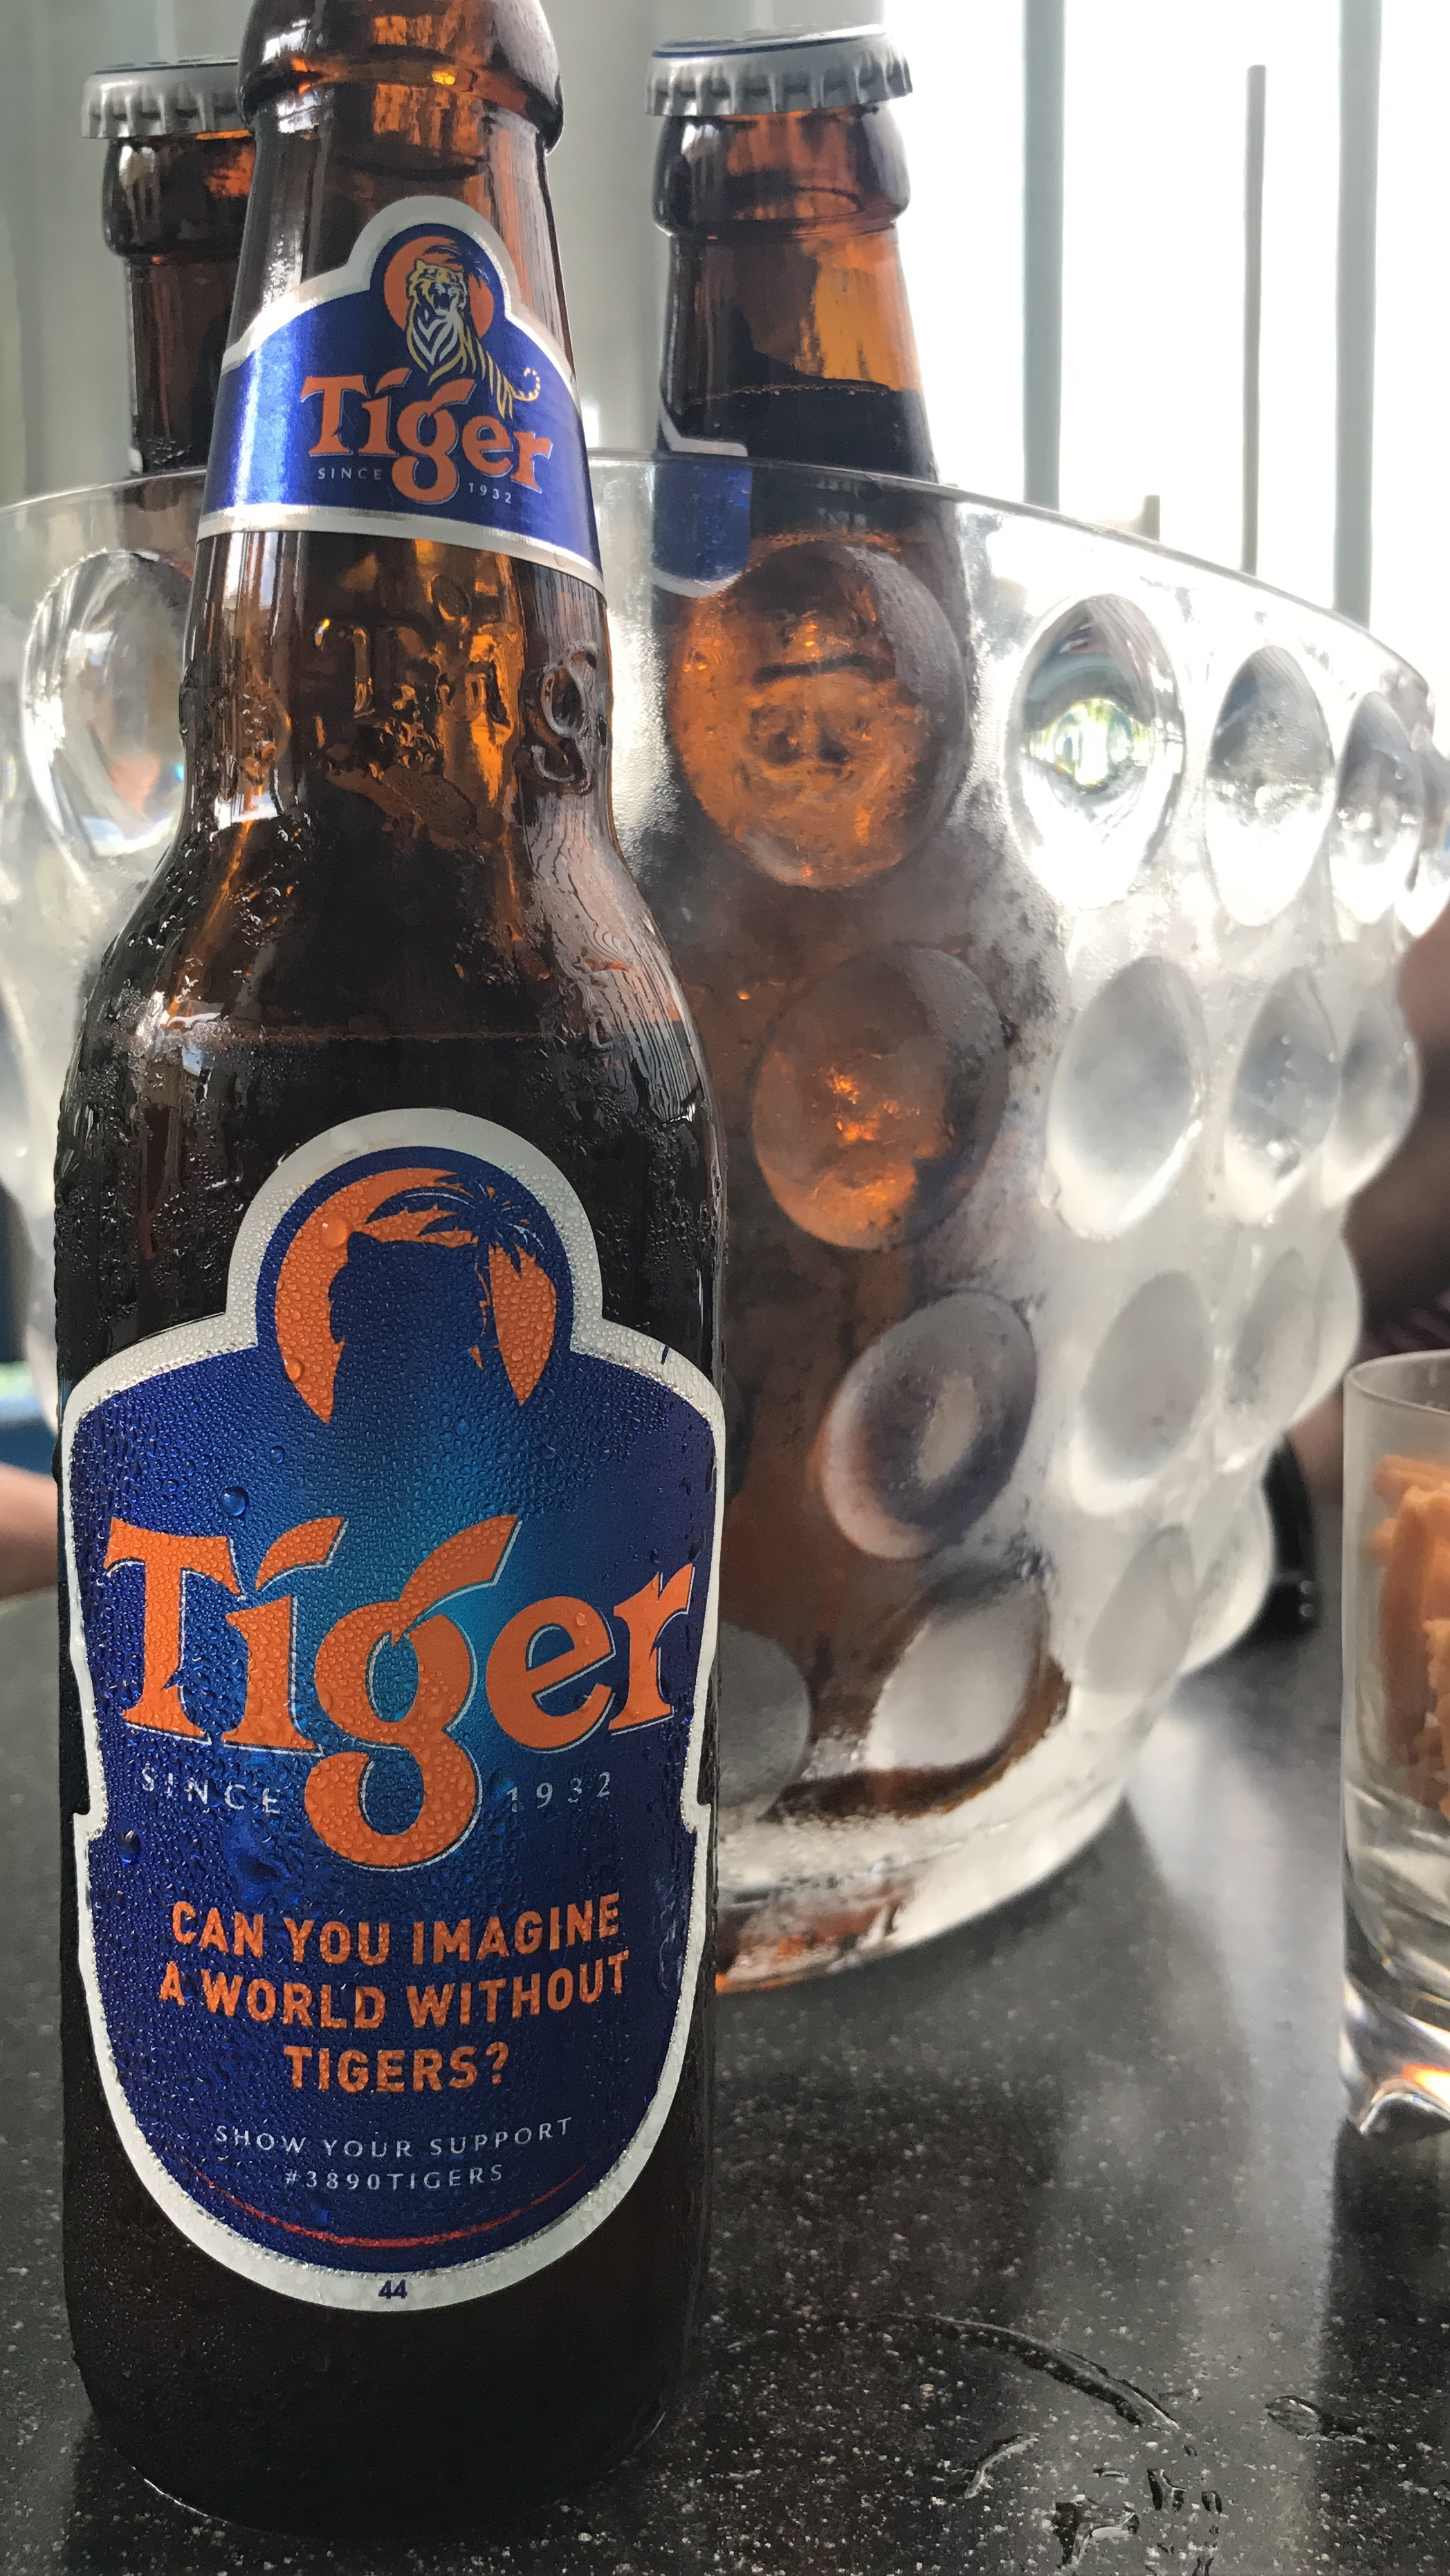 tiger beer isn't cheap in singapore